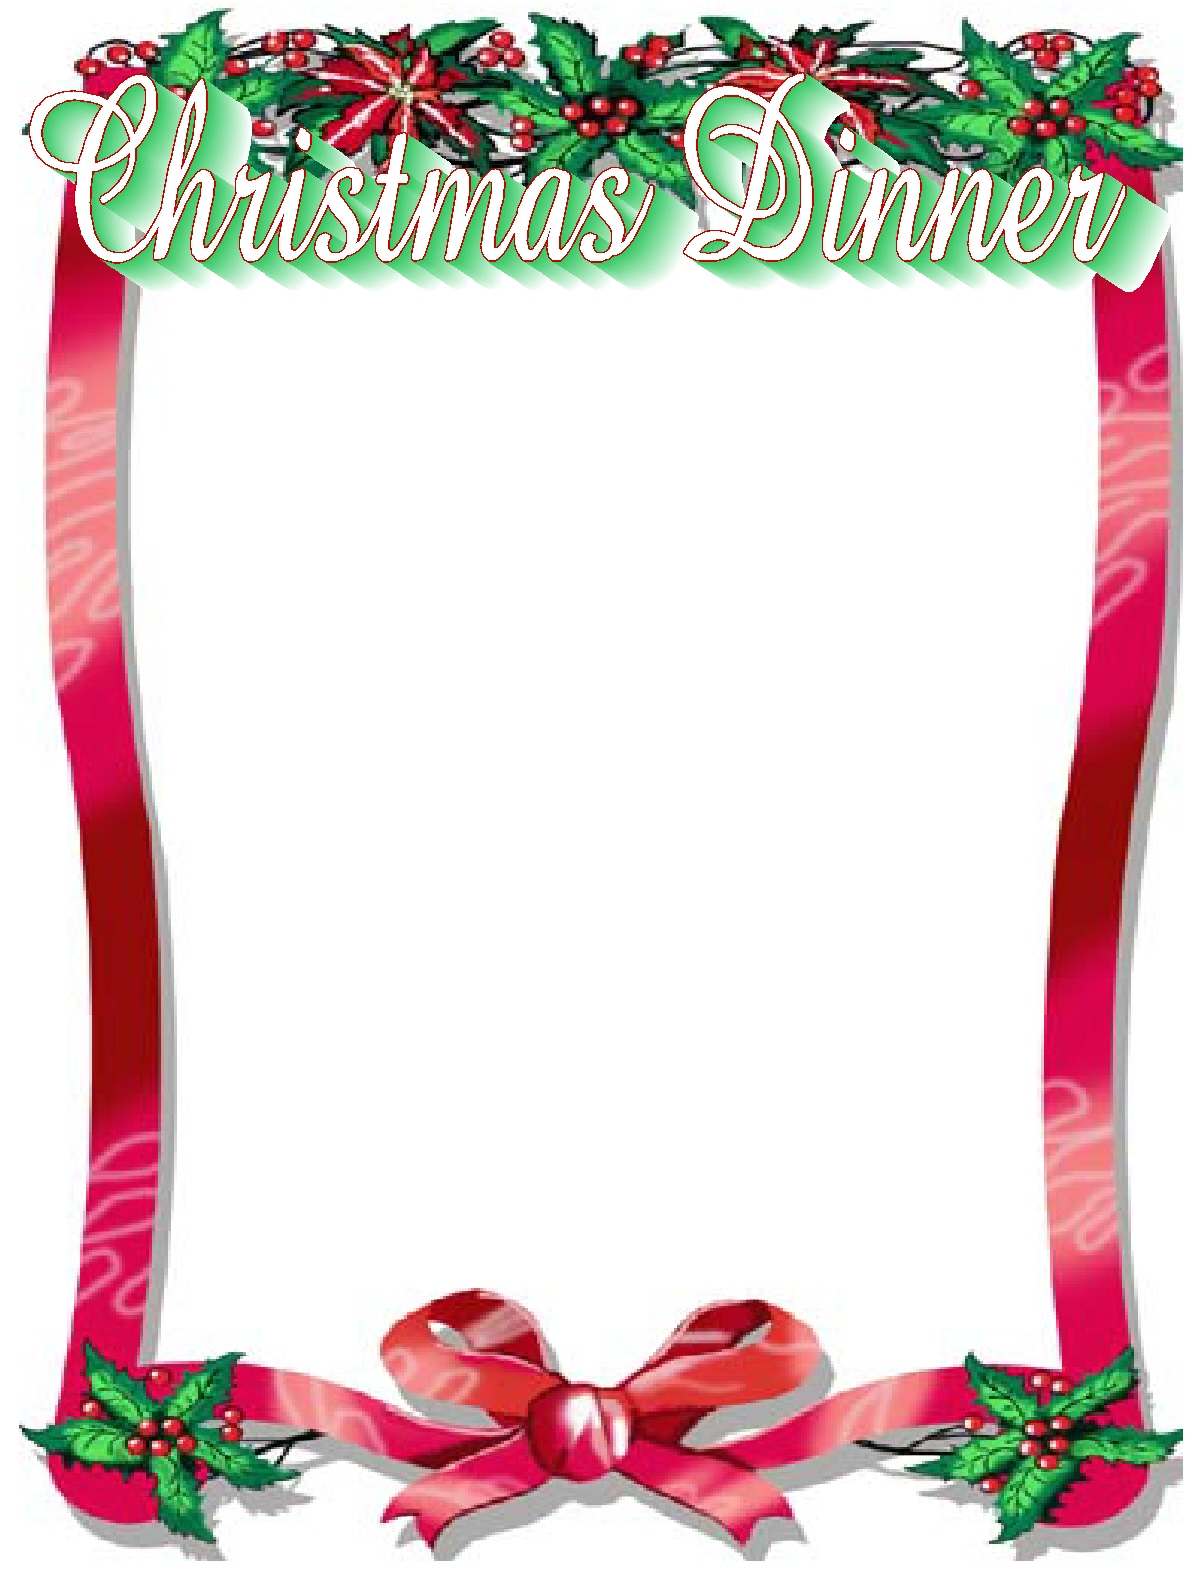 clipart christmas dinner pictures - photo #11